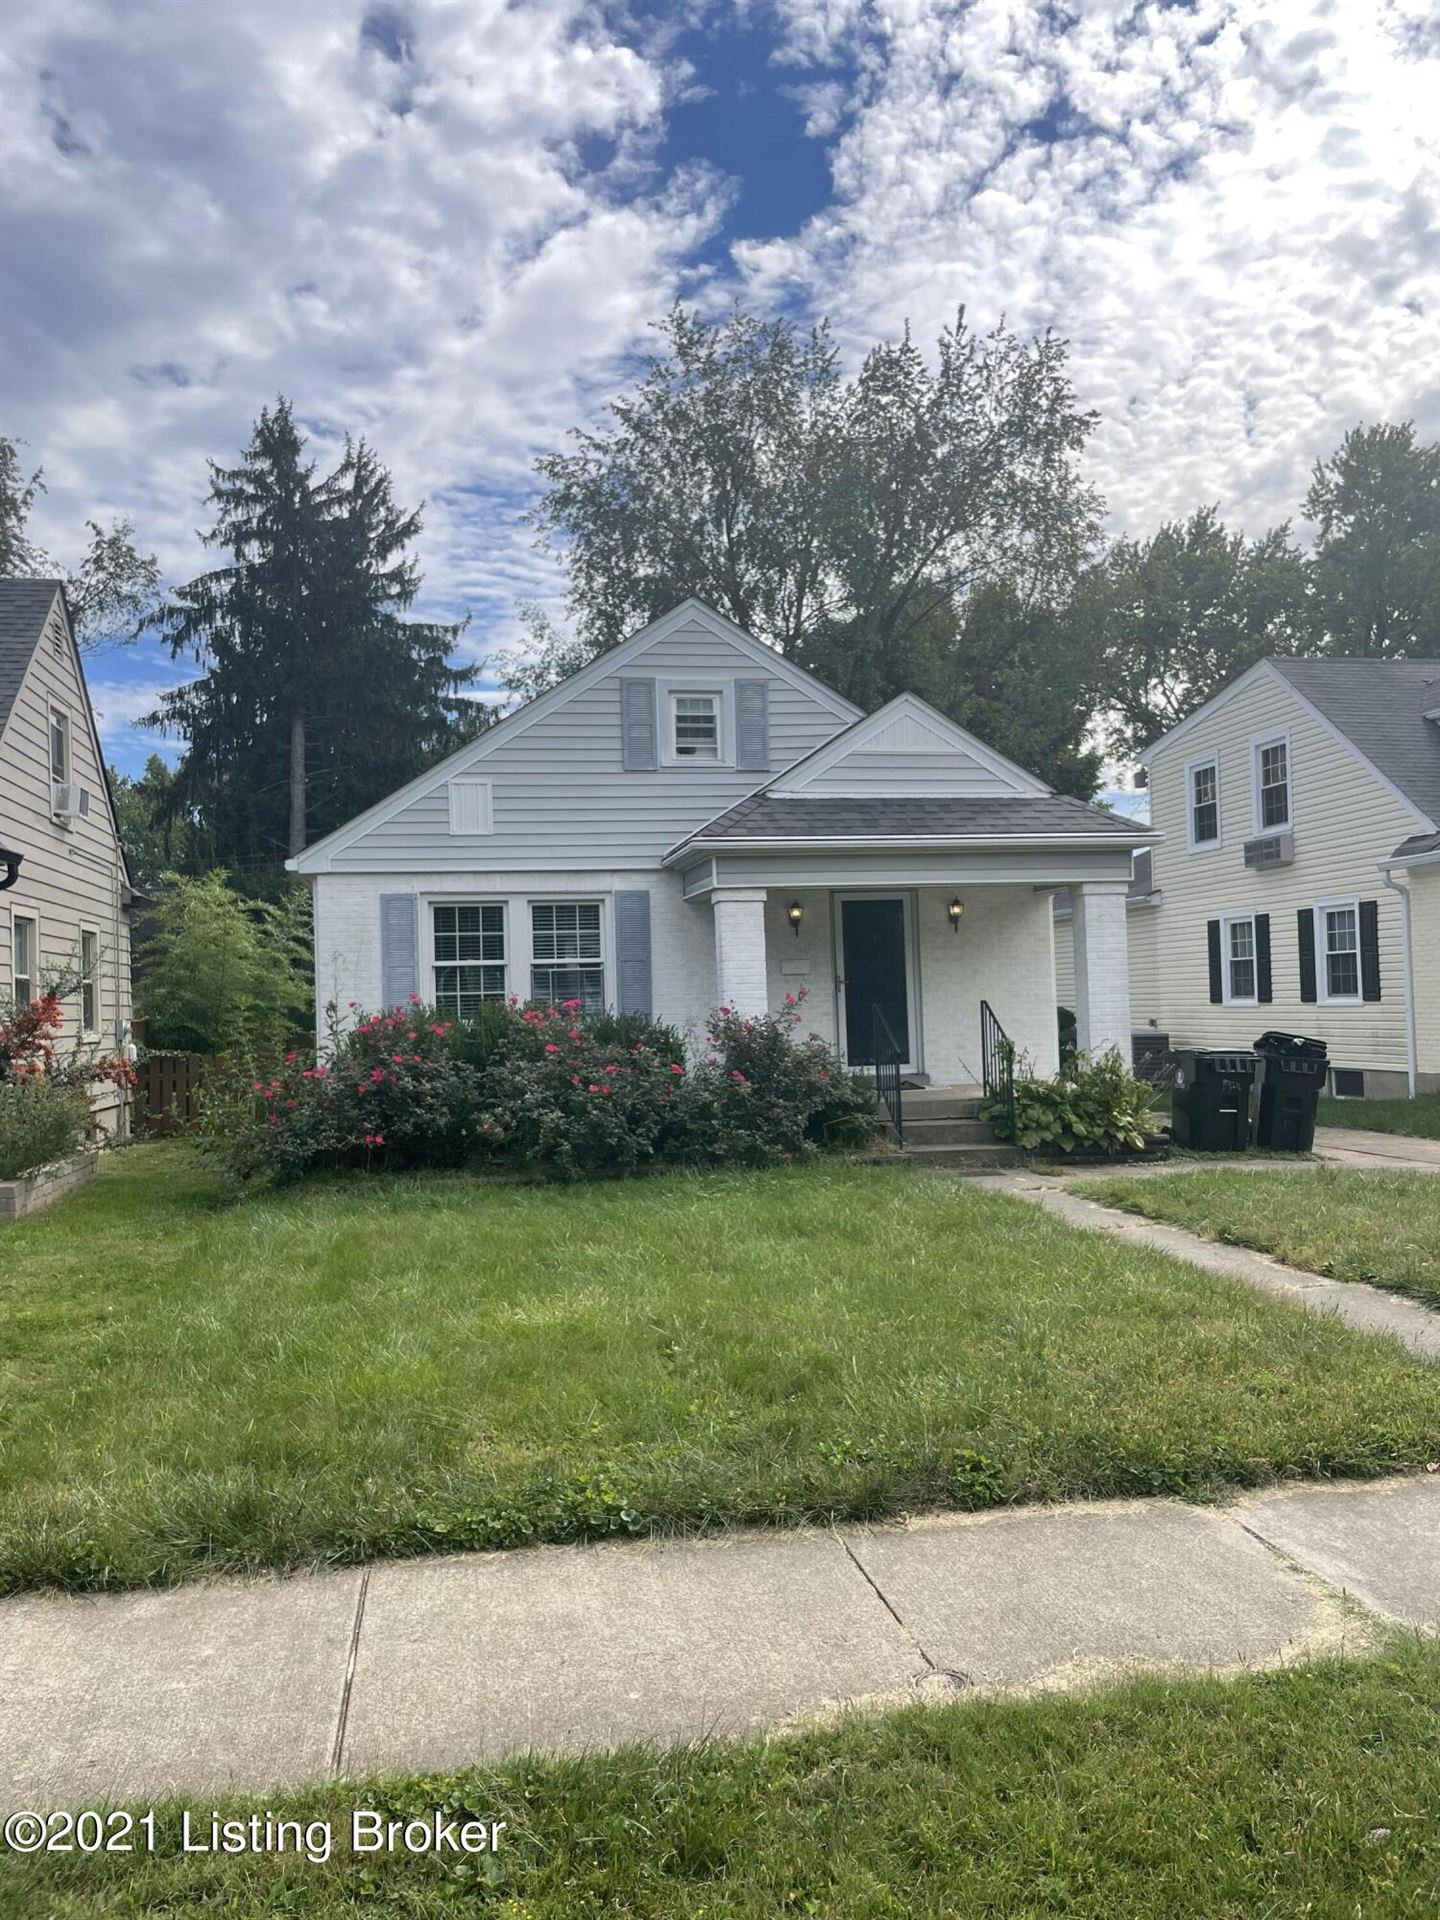 Photo for 3920 Grandview Ave, Louisville, KY 40207 (MLS # 1597728)